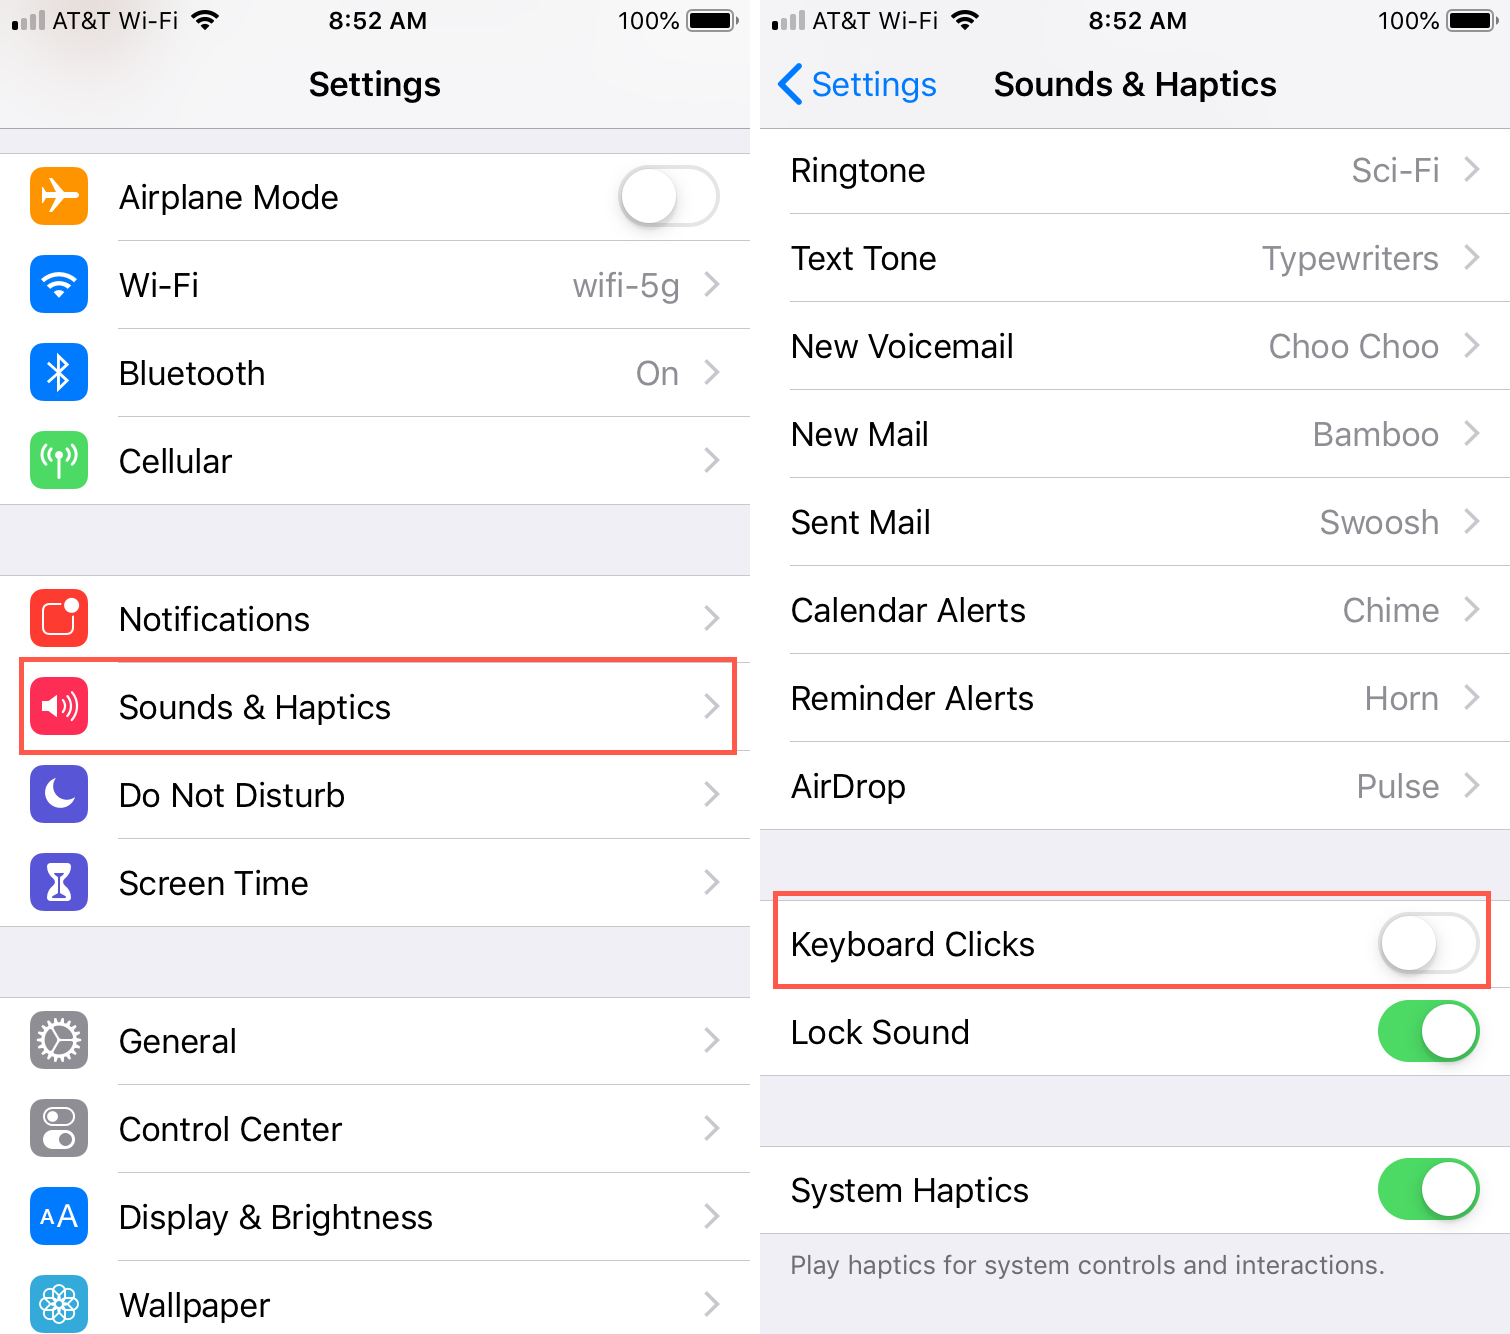 How to turn off the keyboard click sounds on iPhone and iPad